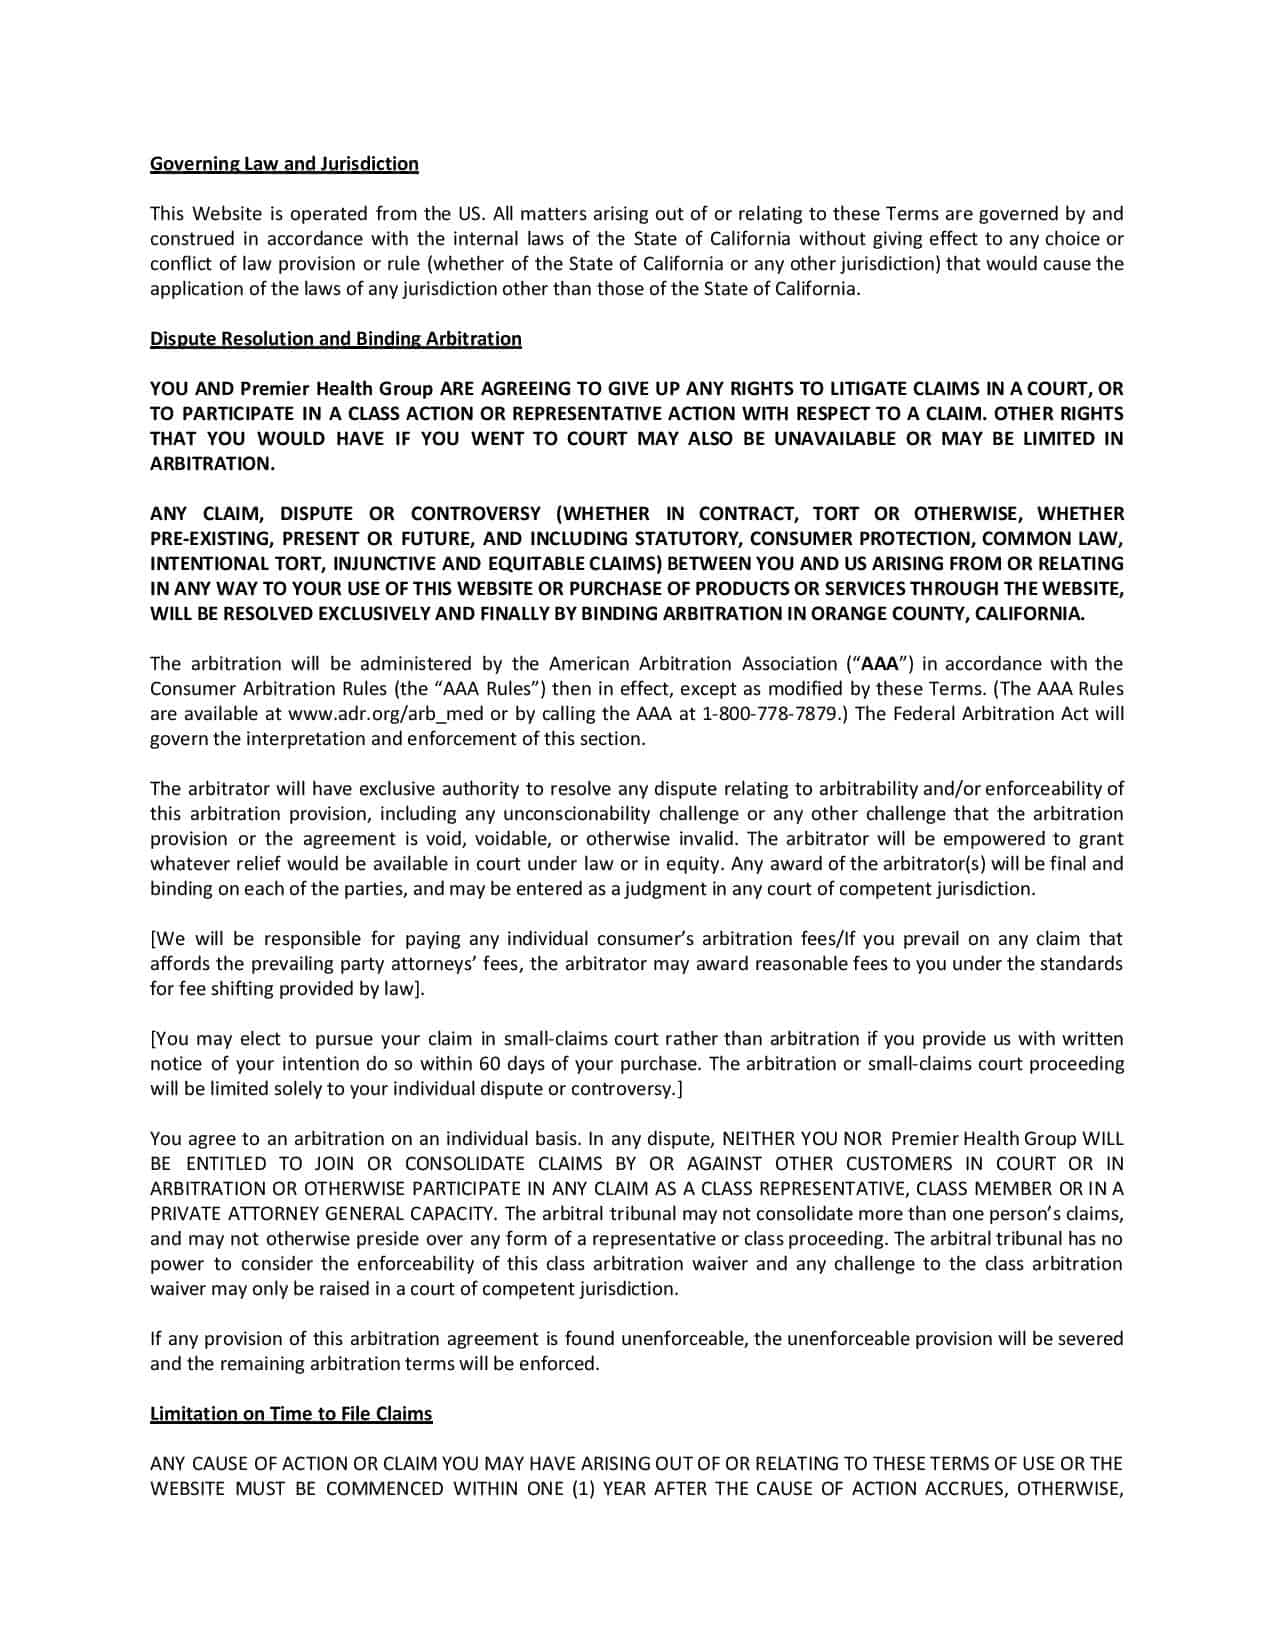 salvationsdrugaddictiontreatment Terms of Use-page-006